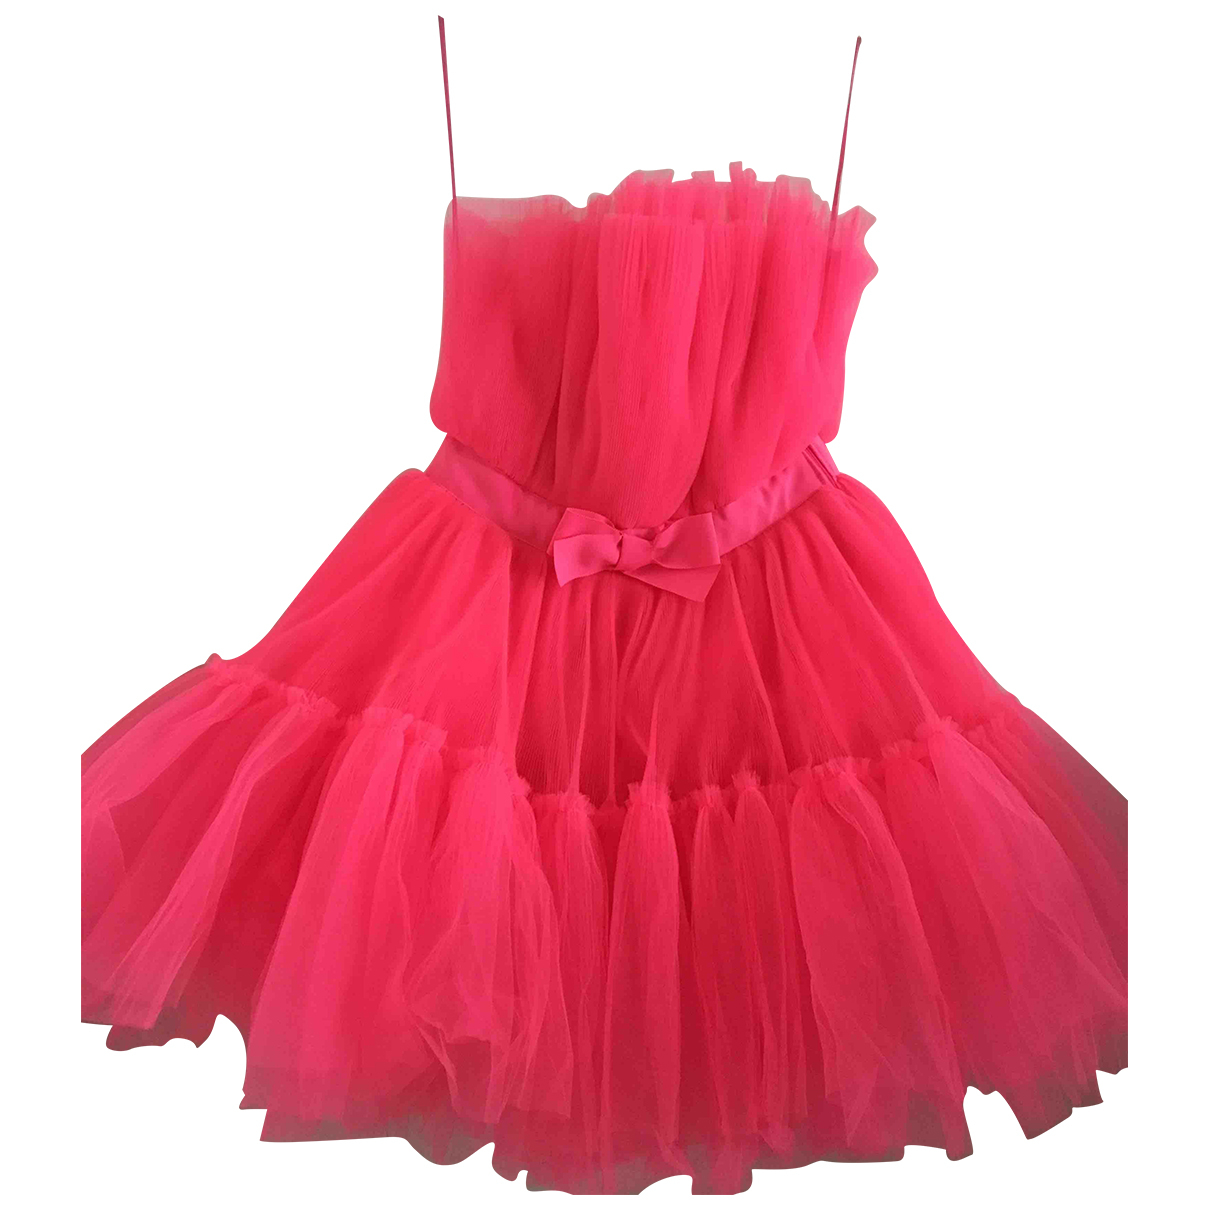 Giambattista Valli X H&m N Pink dress for Women L International